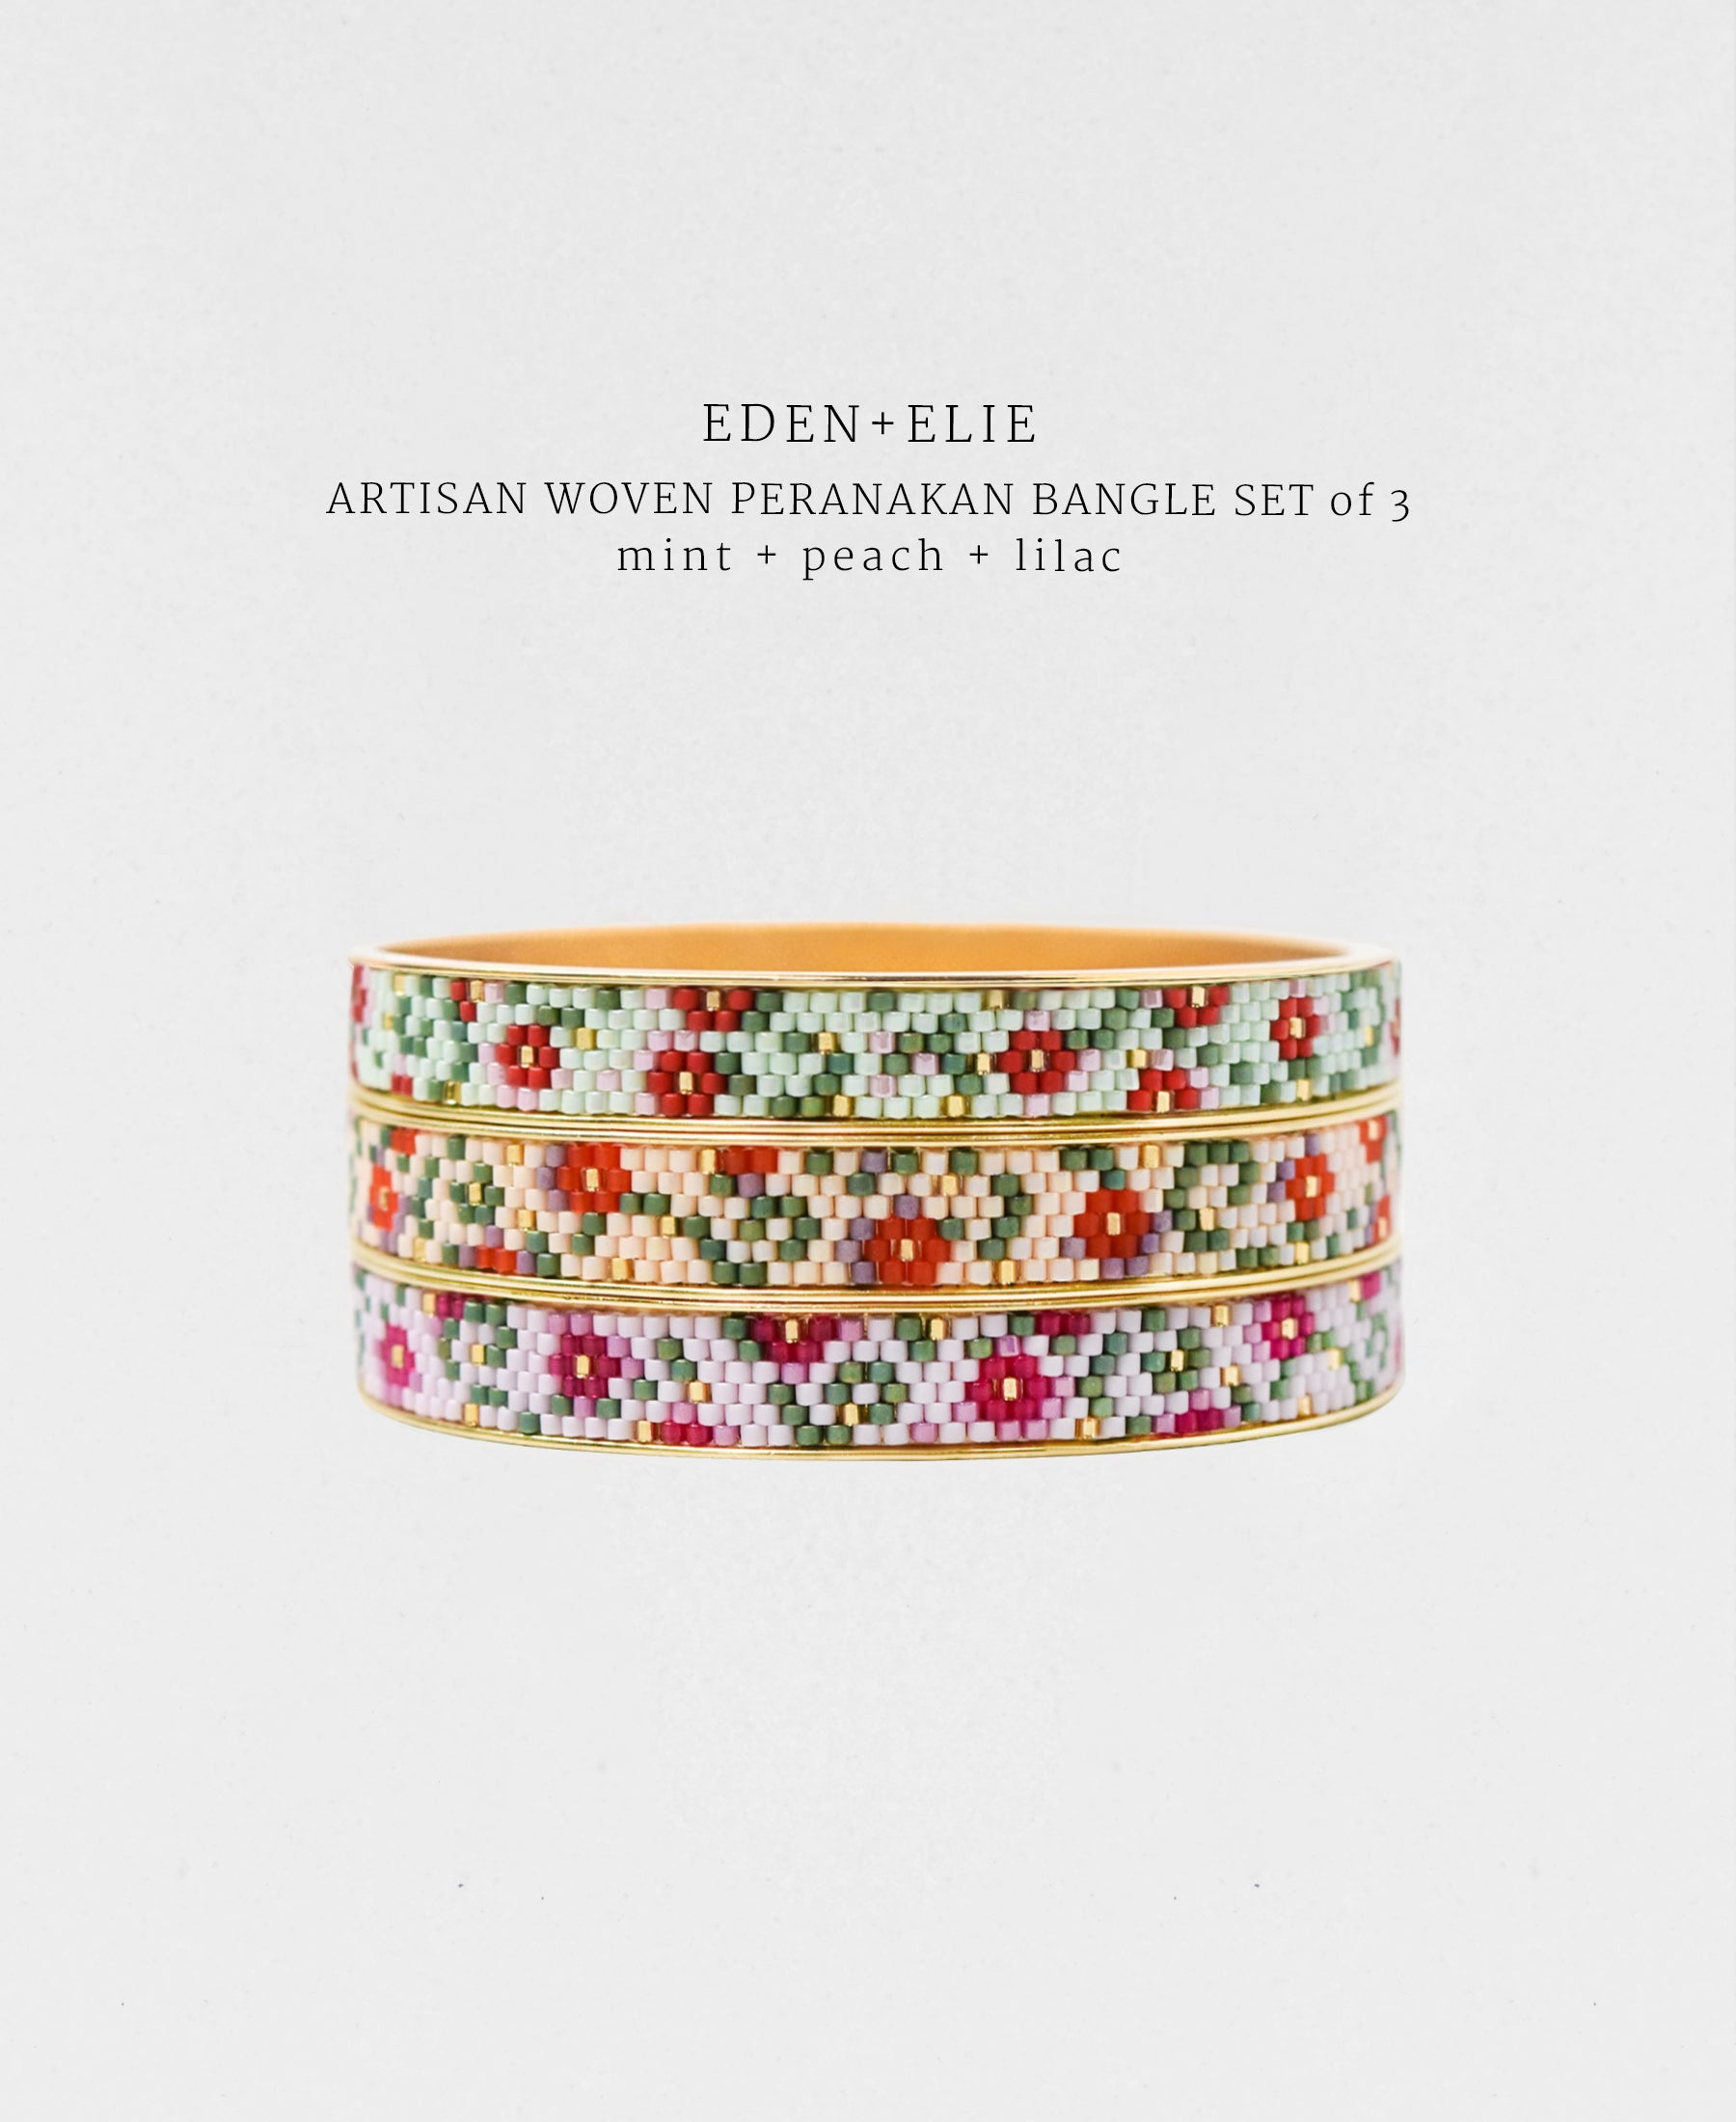 EDEN + ELIE Modern Peranakan gold narrow bangles set of 3 - mint + lilac + peach